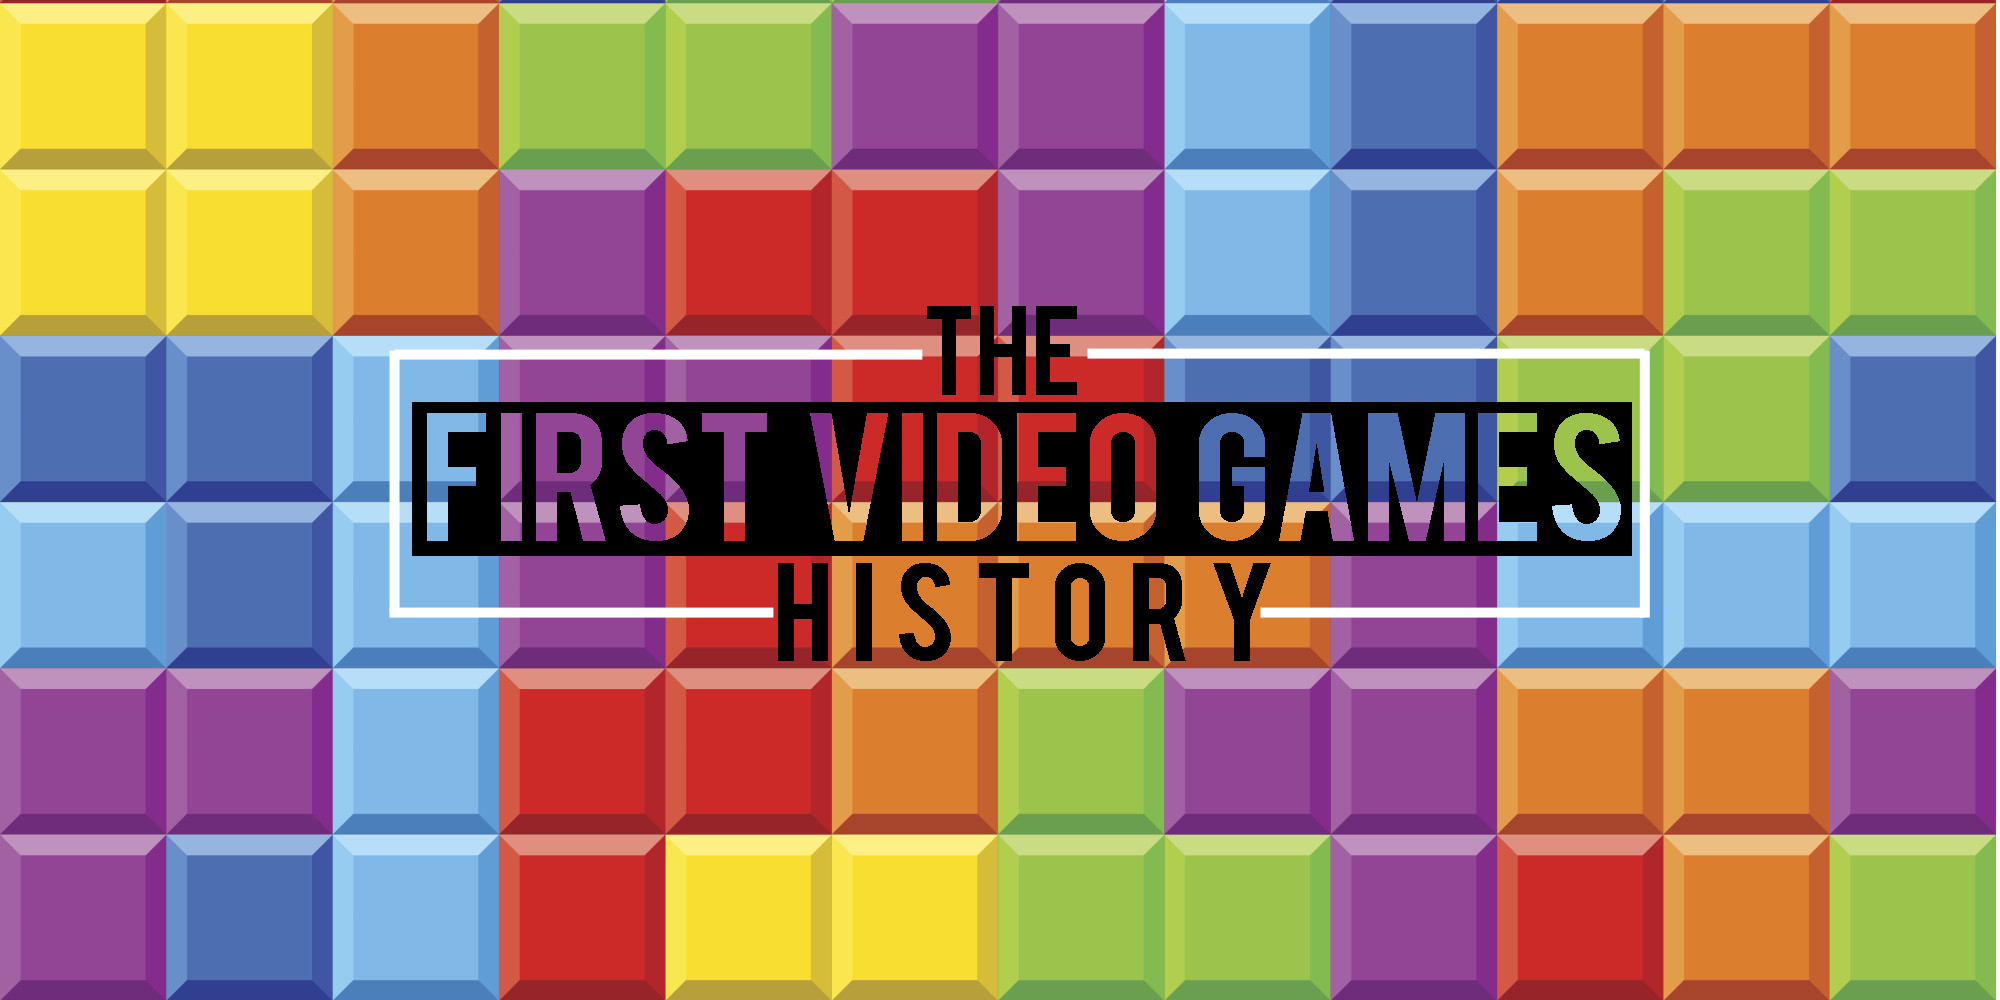 First video games in history